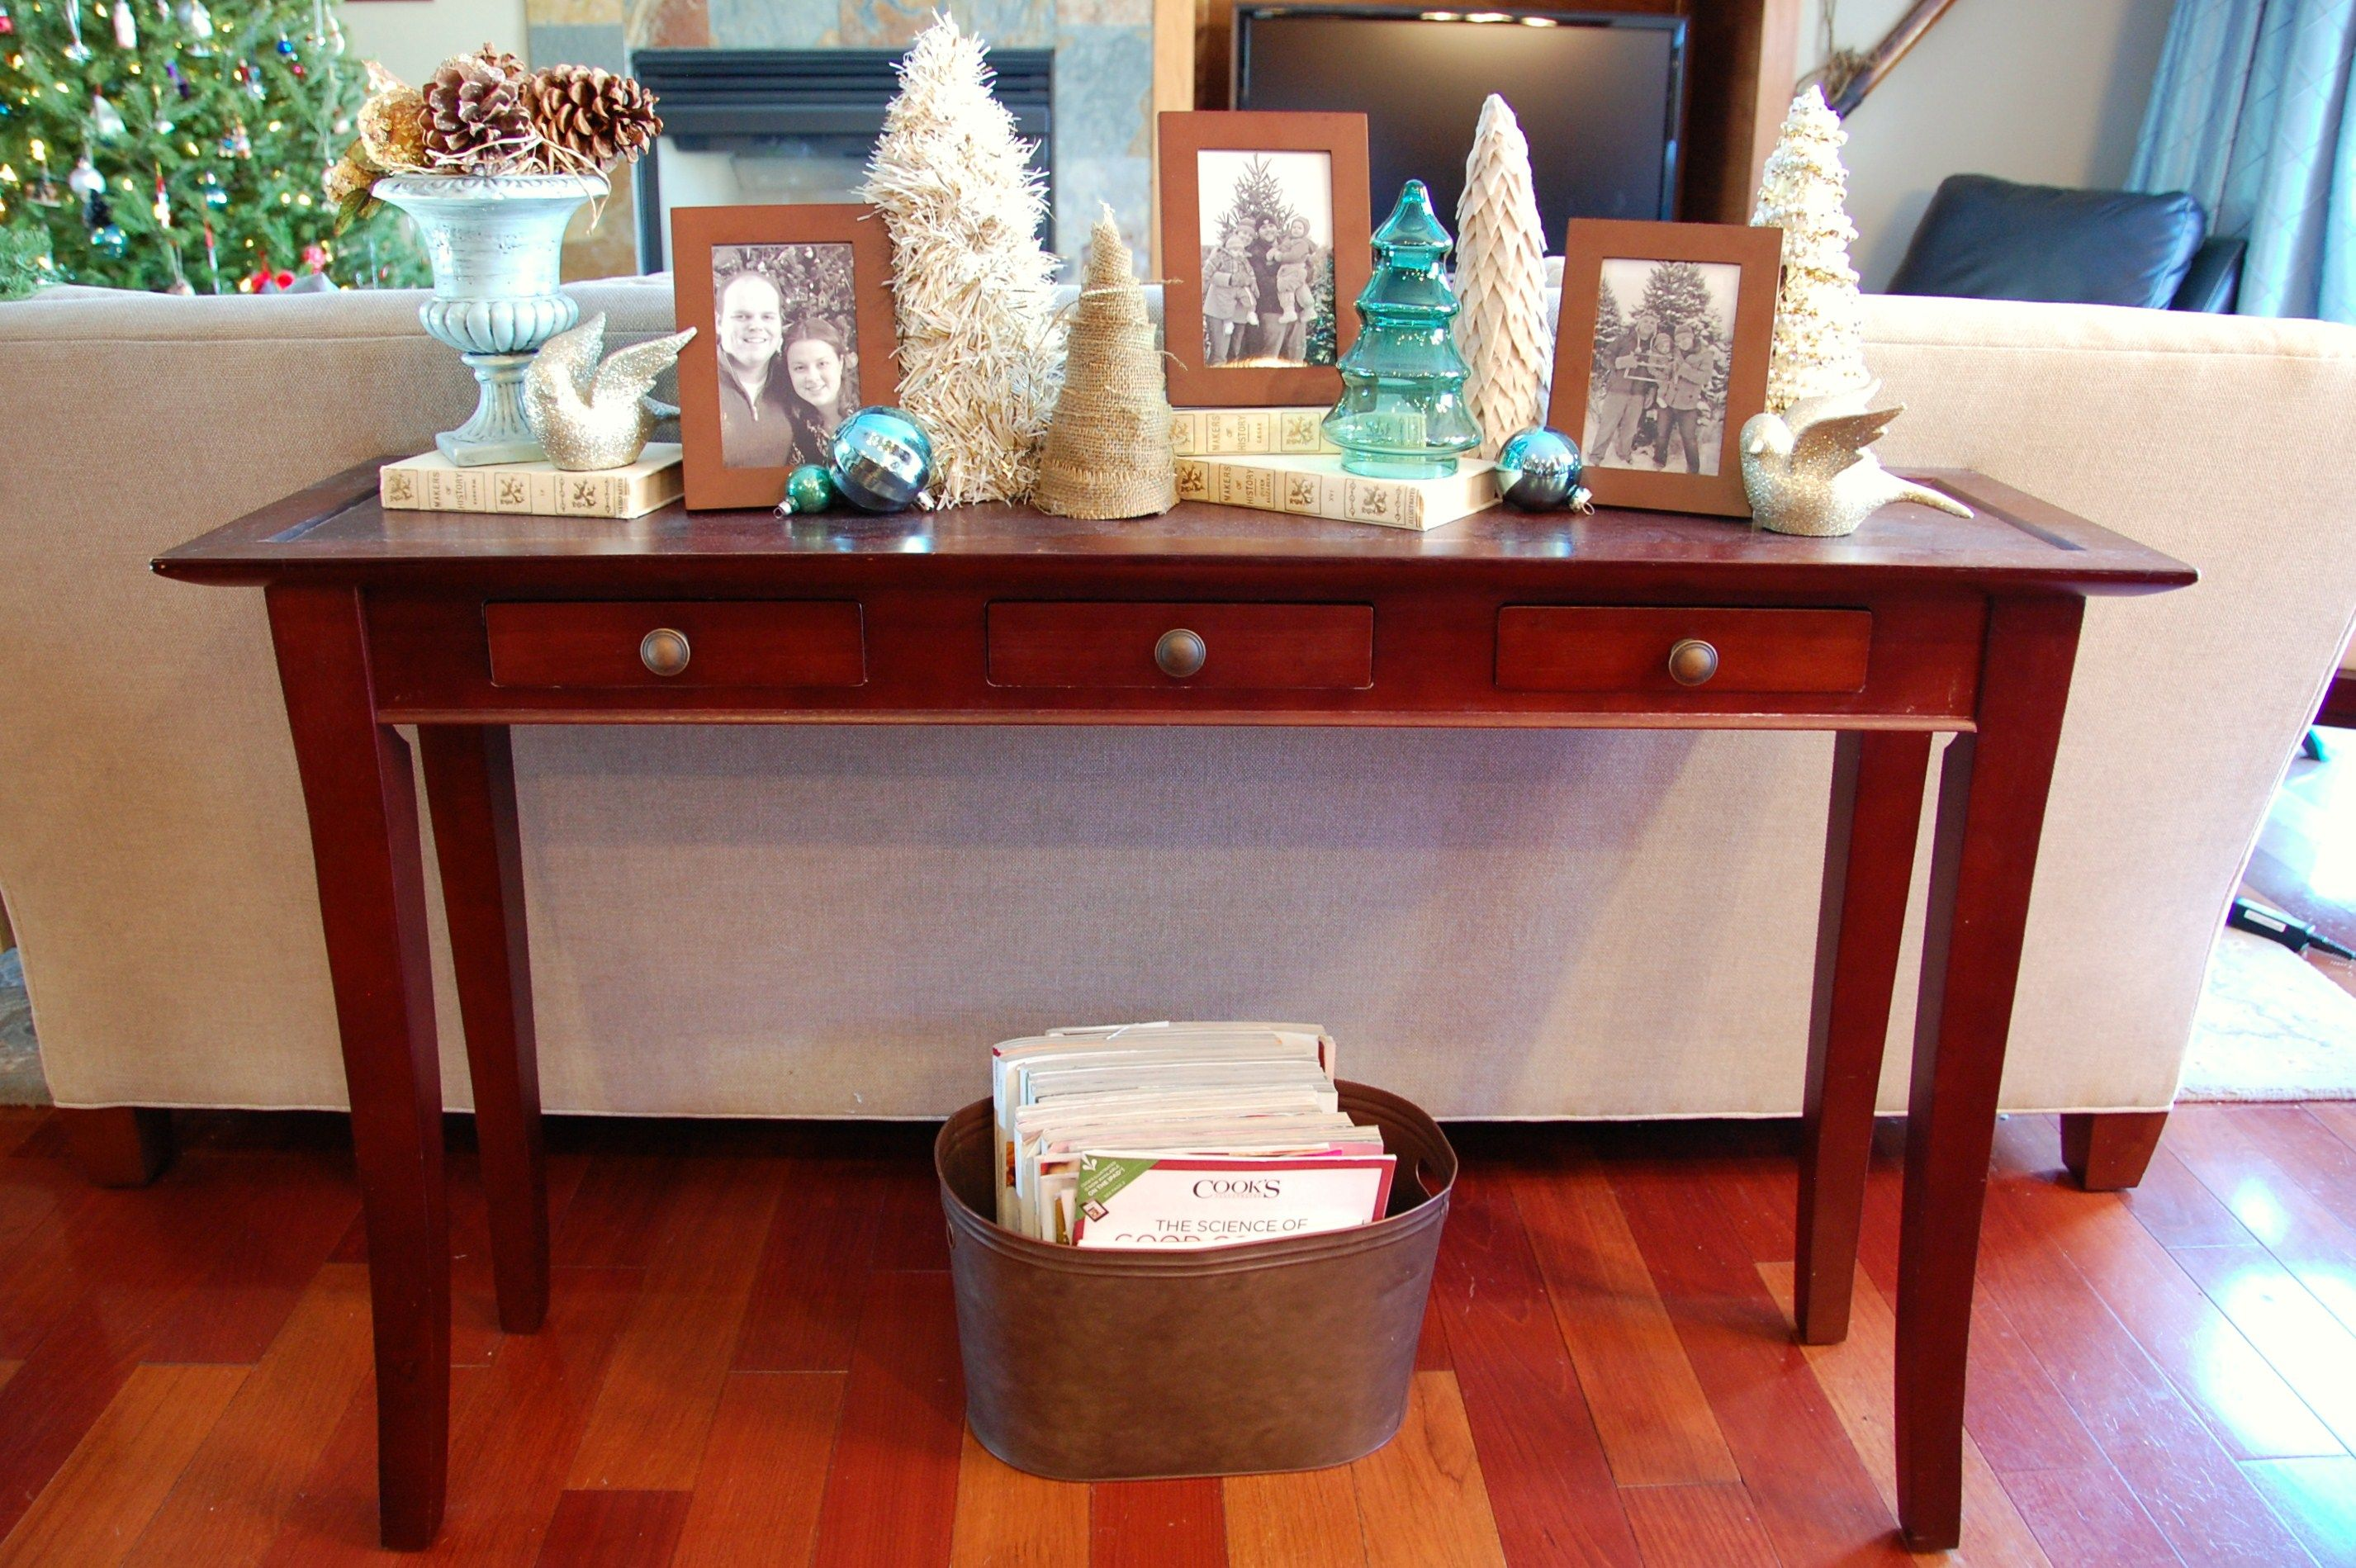 Cool Image Result For Decorating Sofa Table For Christmas Sofa Machost Co Dining Chair Design Ideas Machostcouk